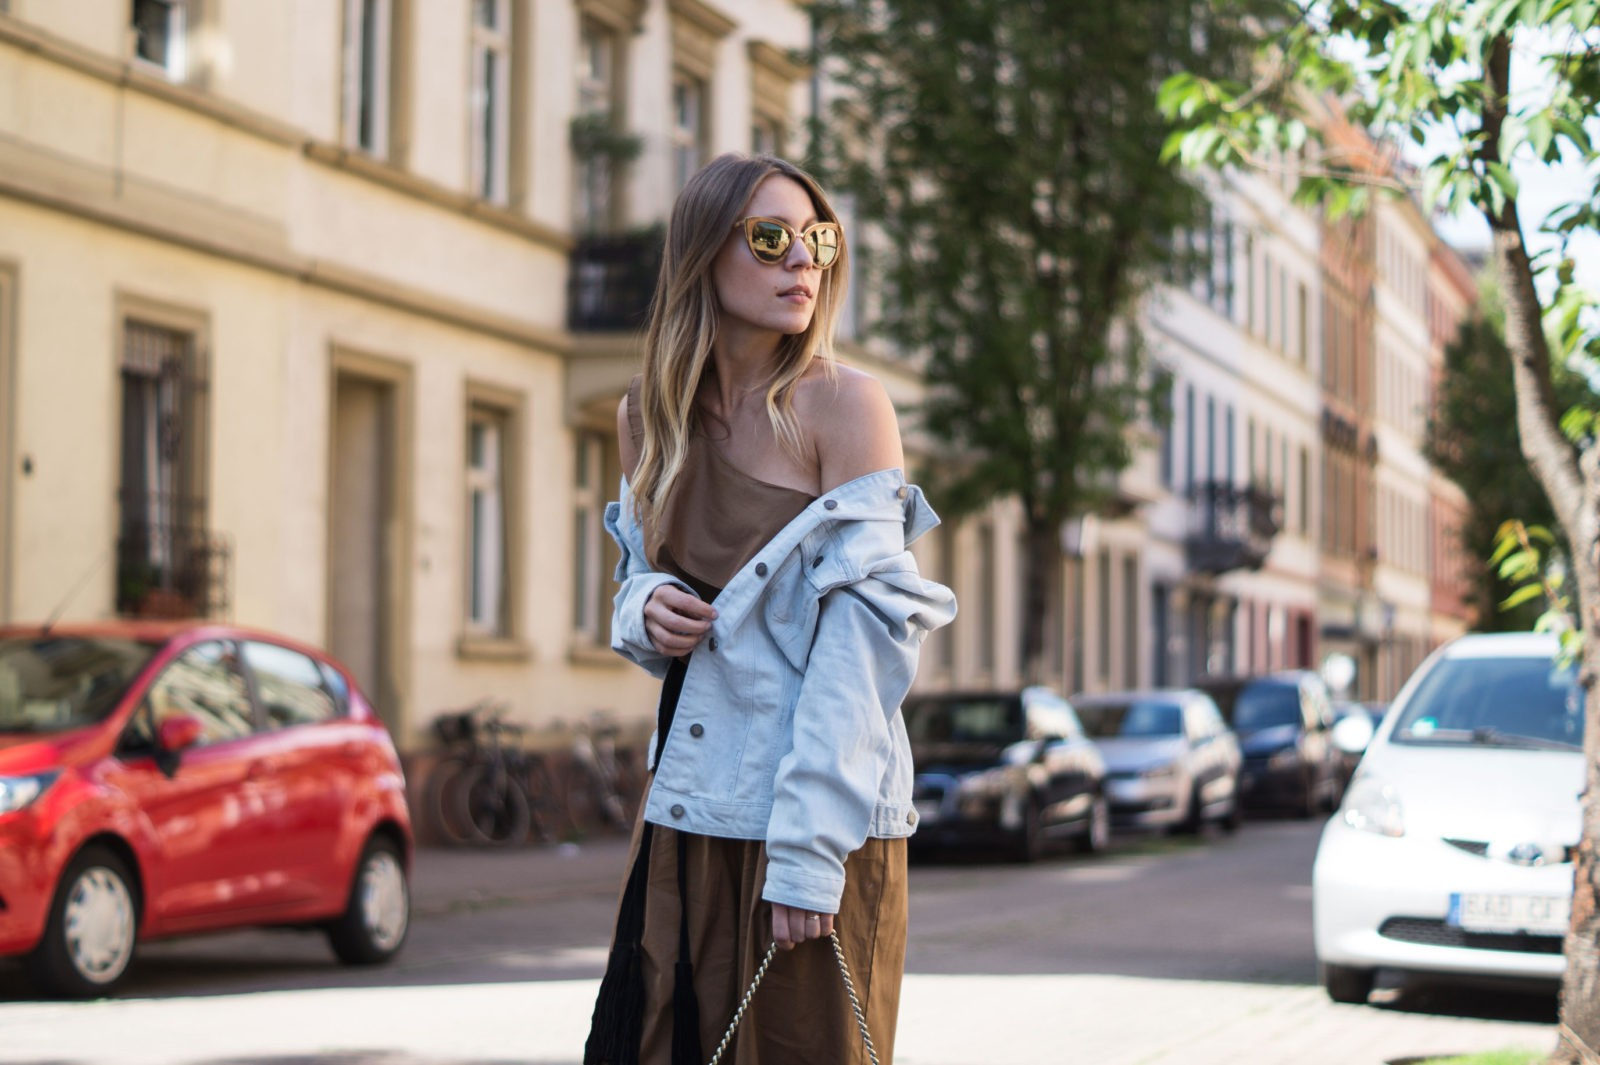 Sariety Modeblog Sarah Czok Fashionblogger Streetstyle Outfit Jumpsuit Obersize Denim Jeansjacke-12